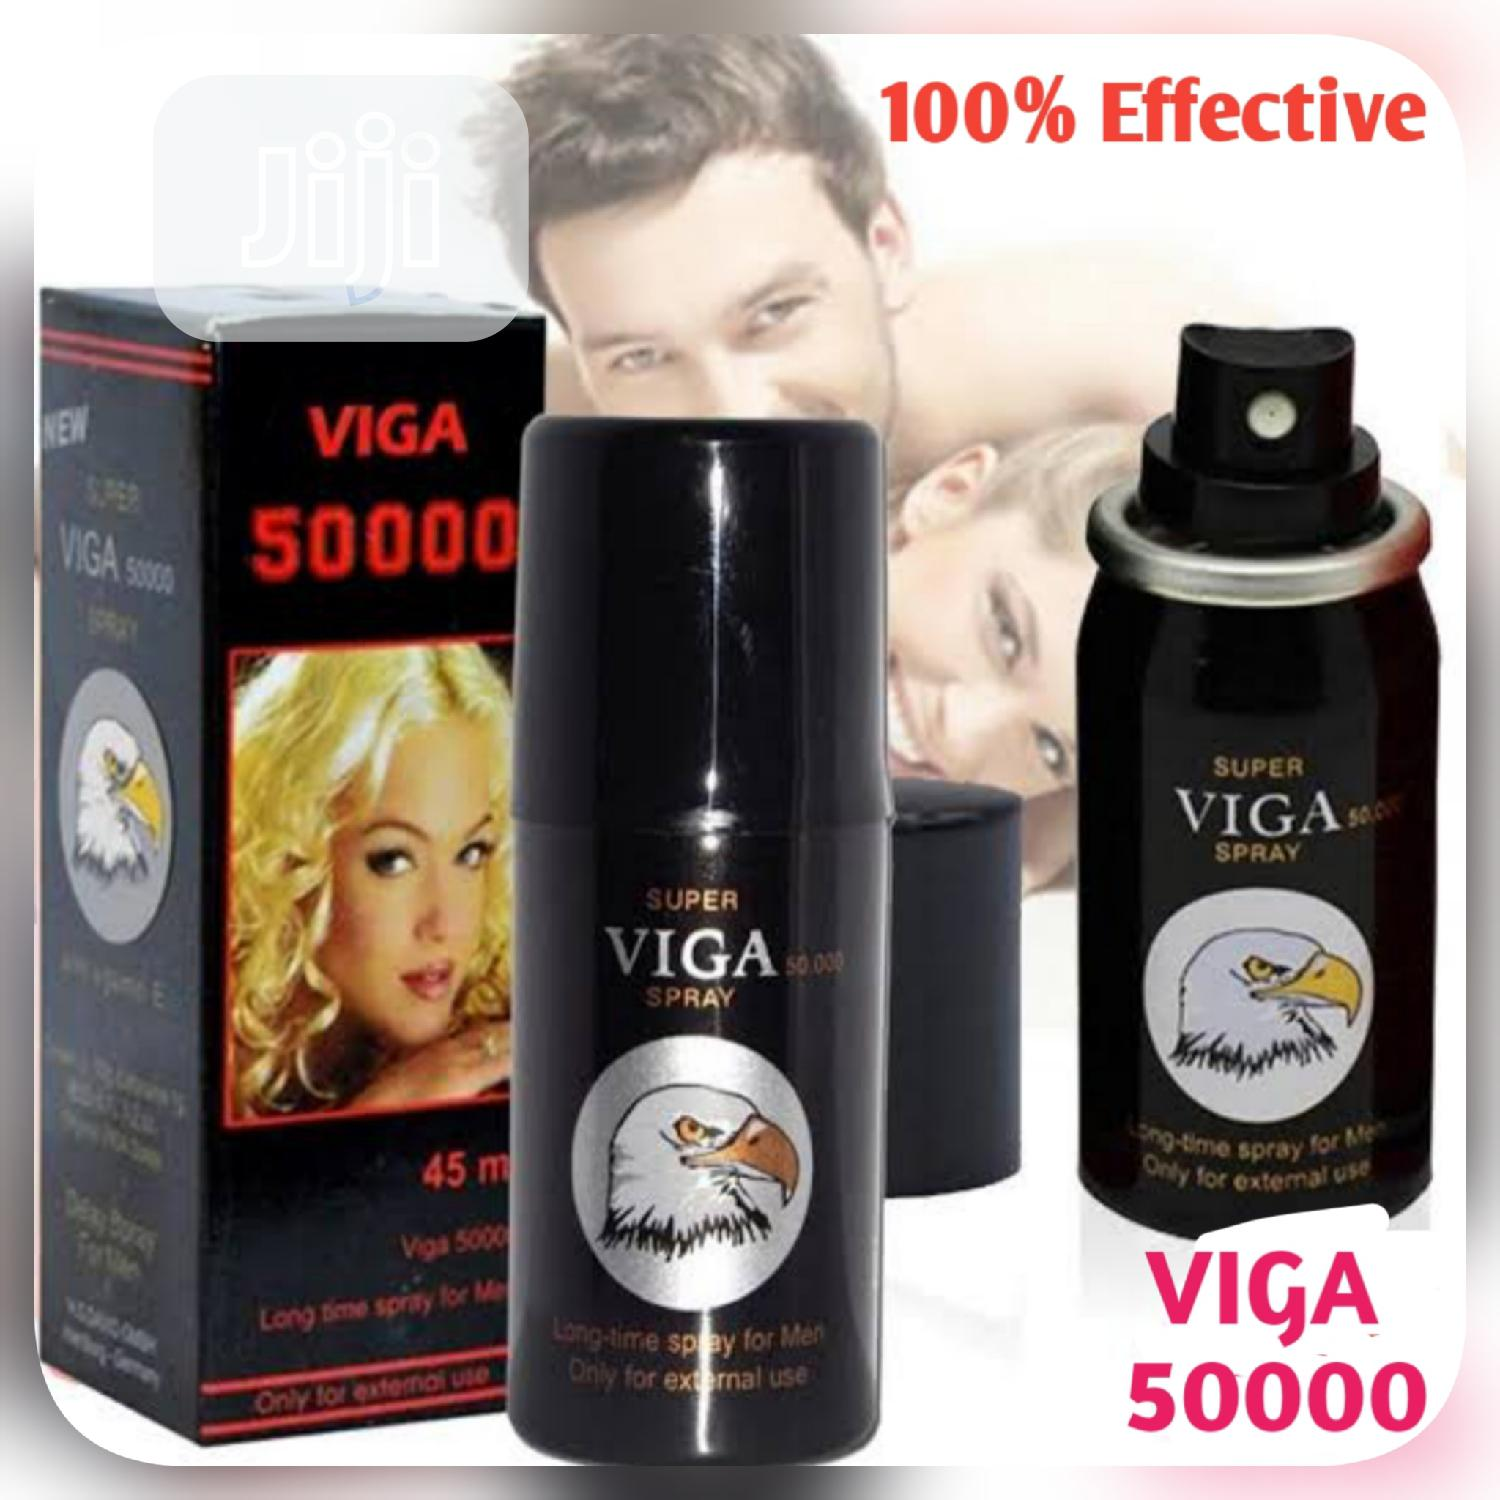 Super Viga Spray 50000 Delay For Men Premature Ejaculation